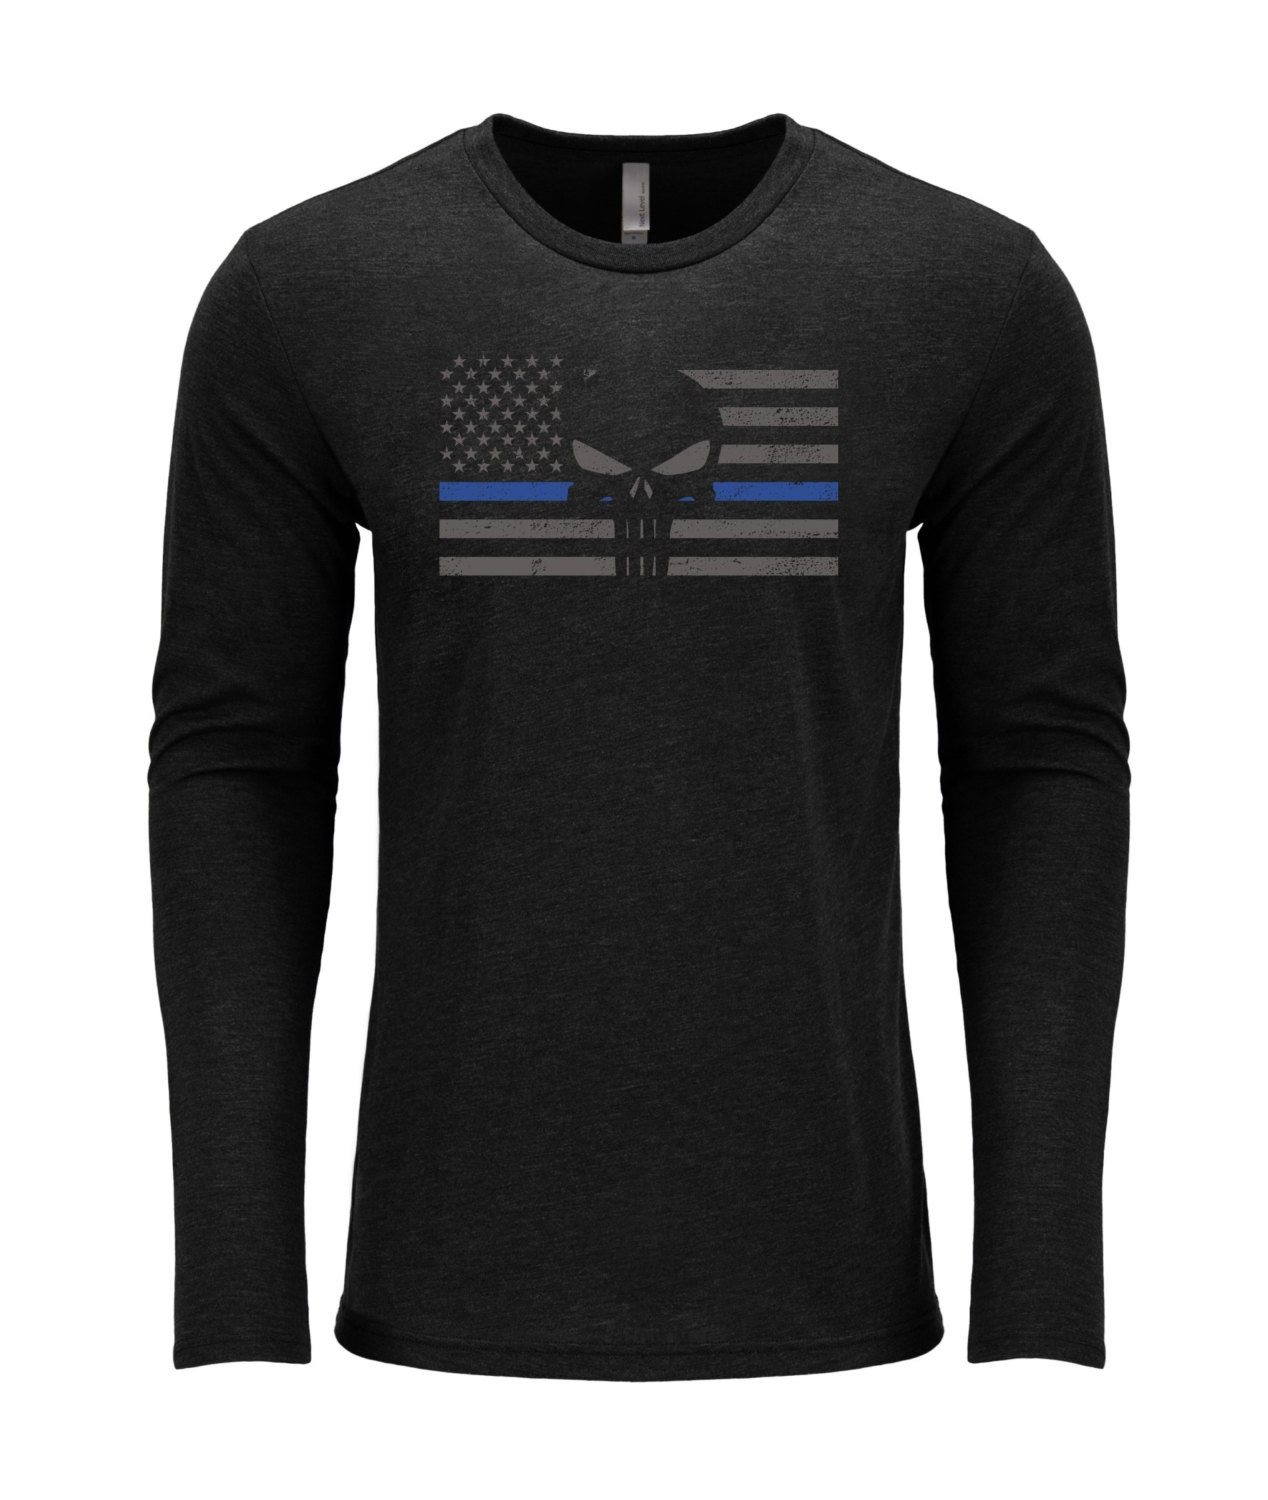 Punisher thin blue line long sleeve soft shirt for Thin long sleeve t shirts